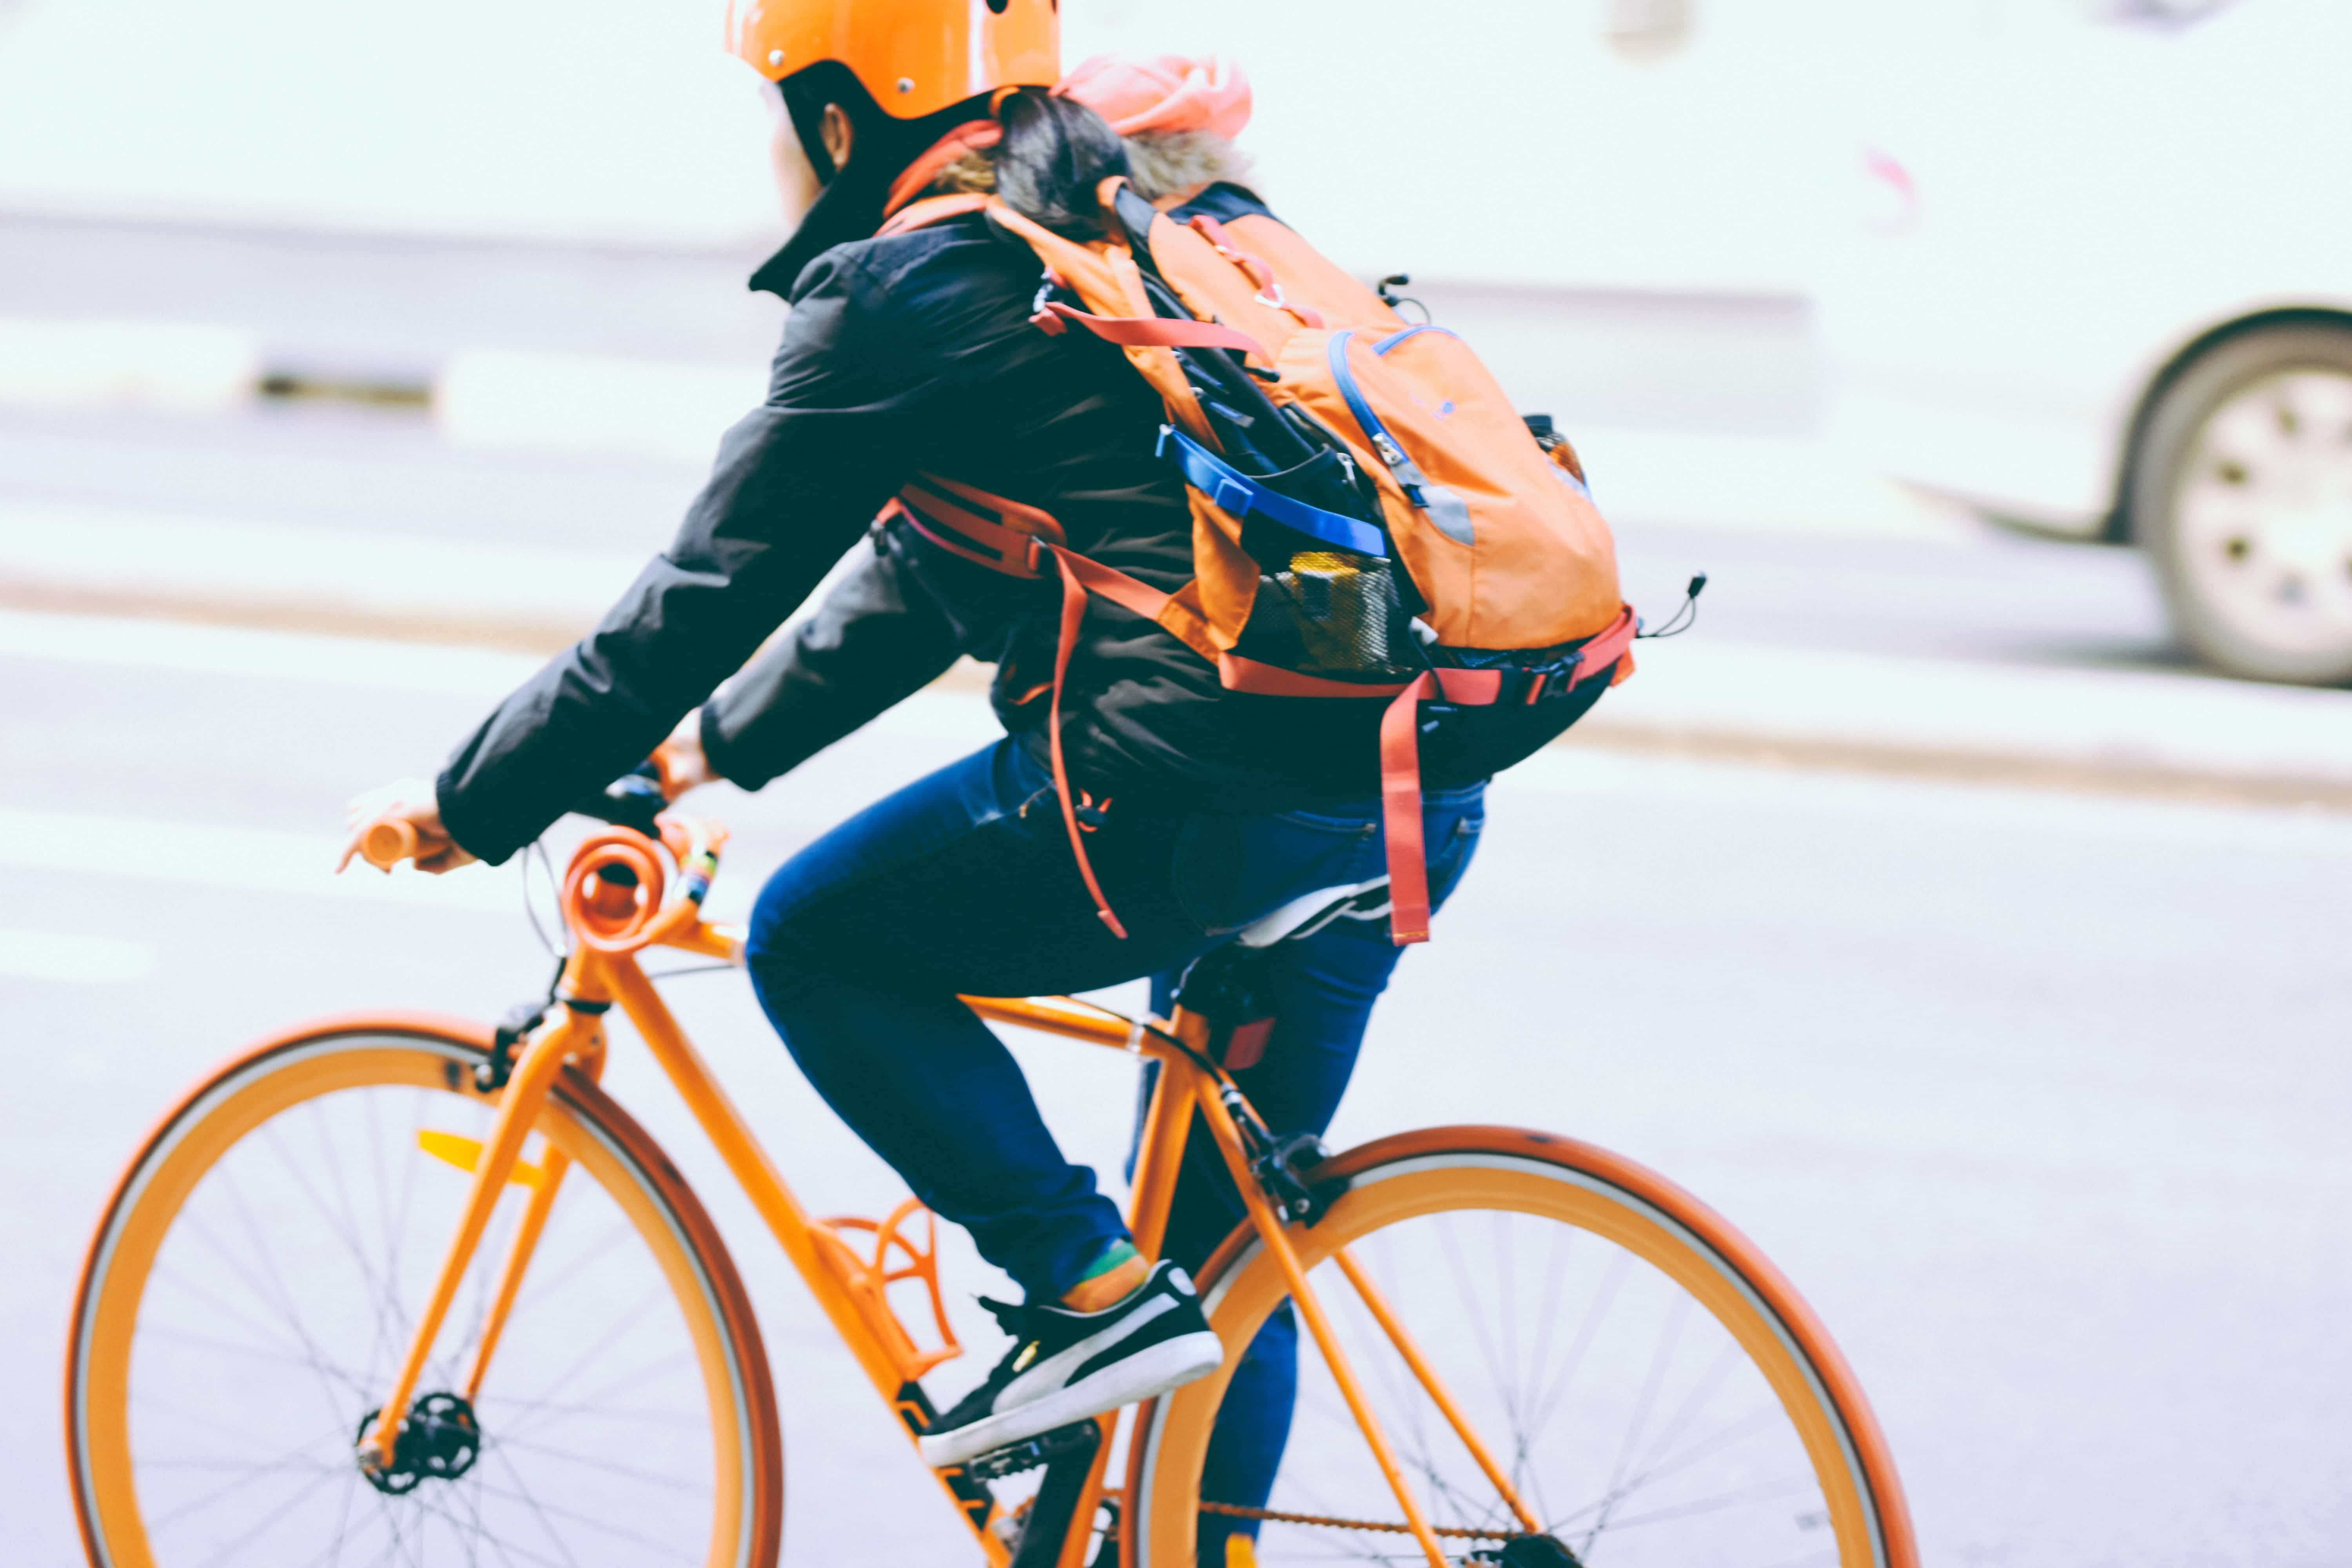 Agency Pushes for All Cyclists to Wear a Helmet